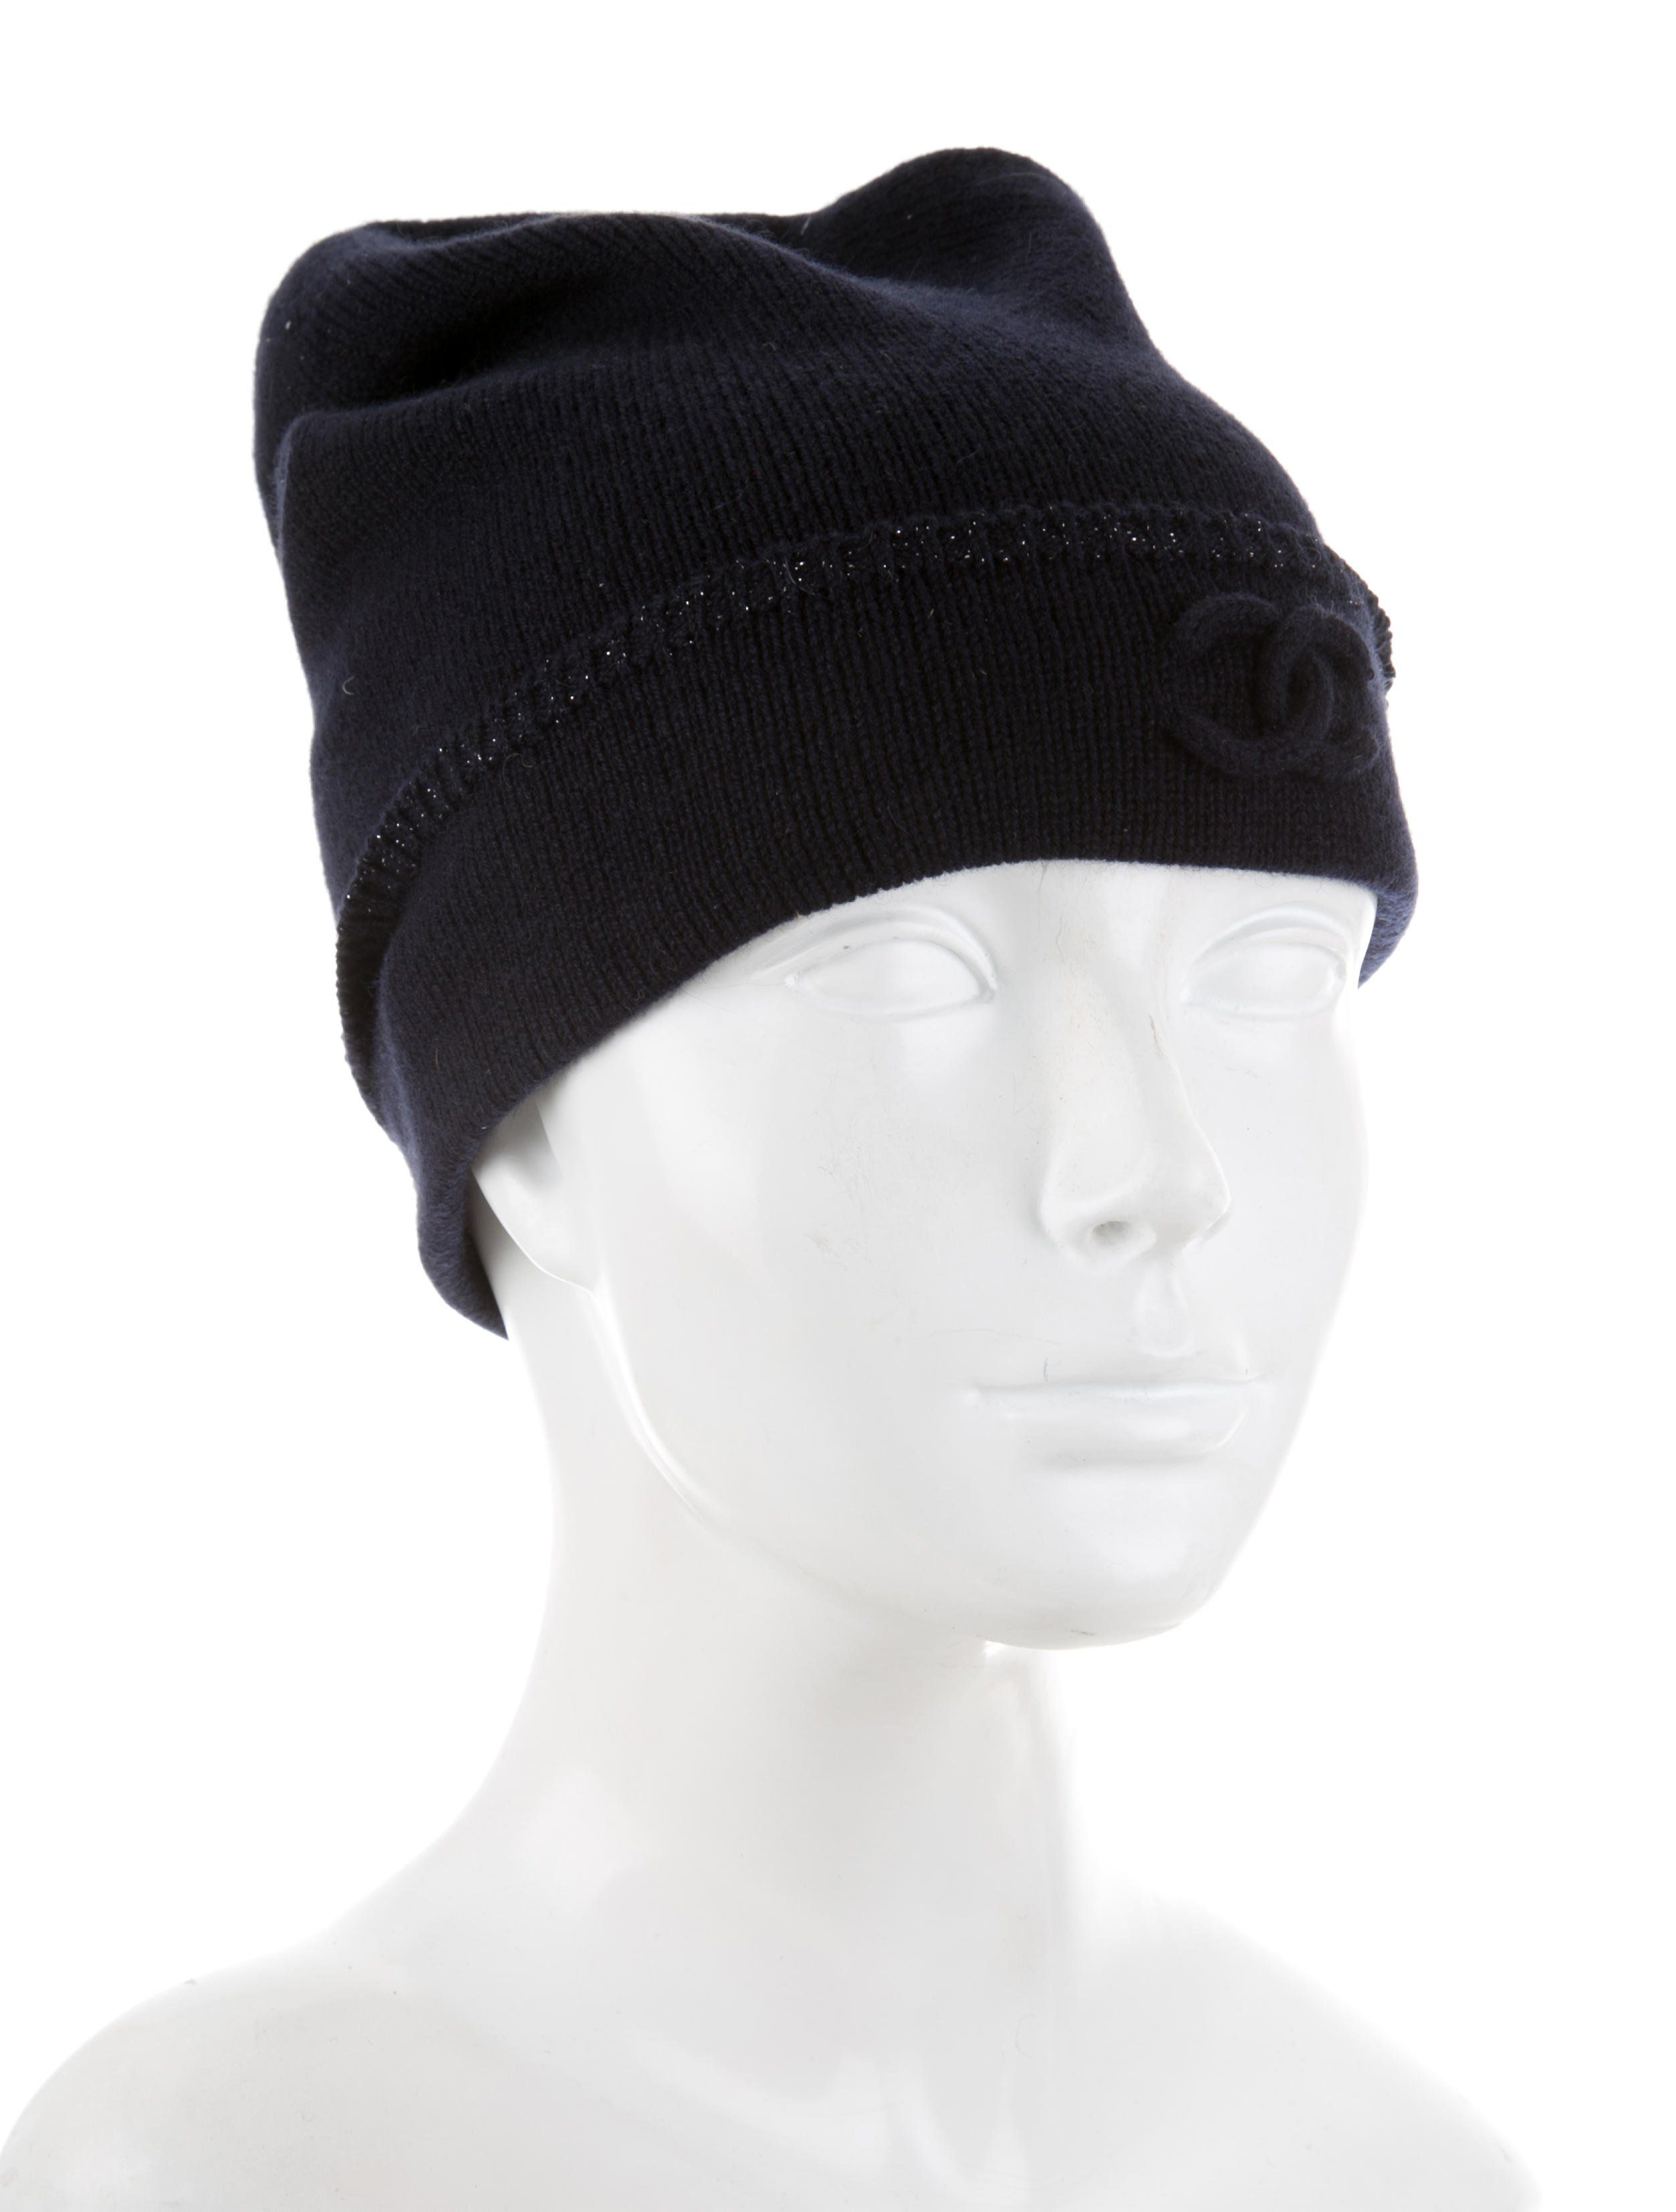 fcfa83b9d27 Midnight Chanel cashmere beanie with metallic trim and interlocking CC  accent at front.